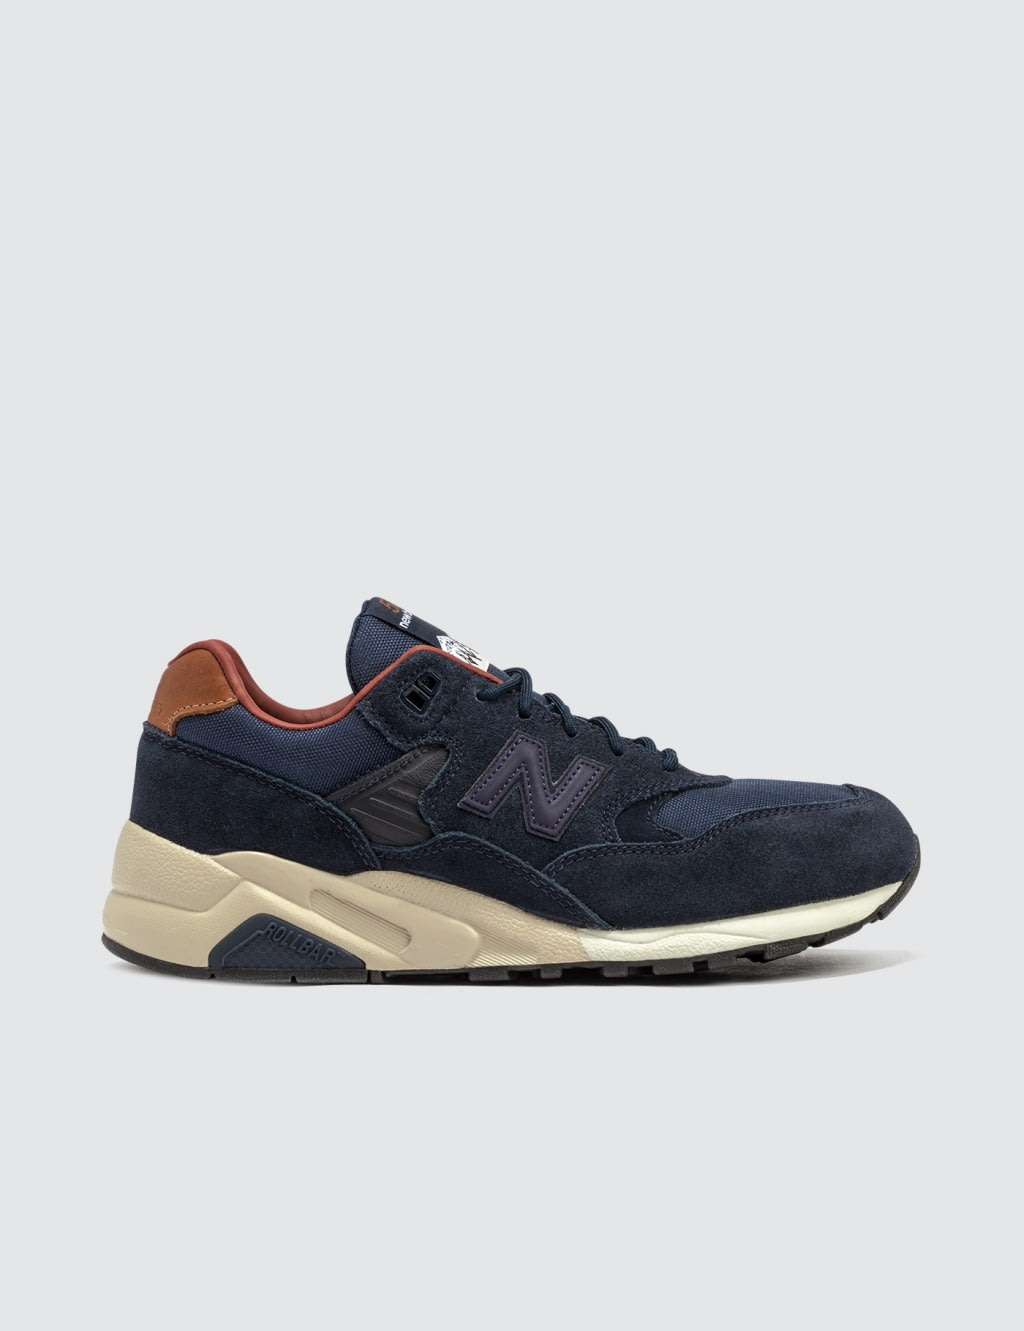 best service 5b840 e6233 clearance new balance 580 brown 1f506 b6d2b